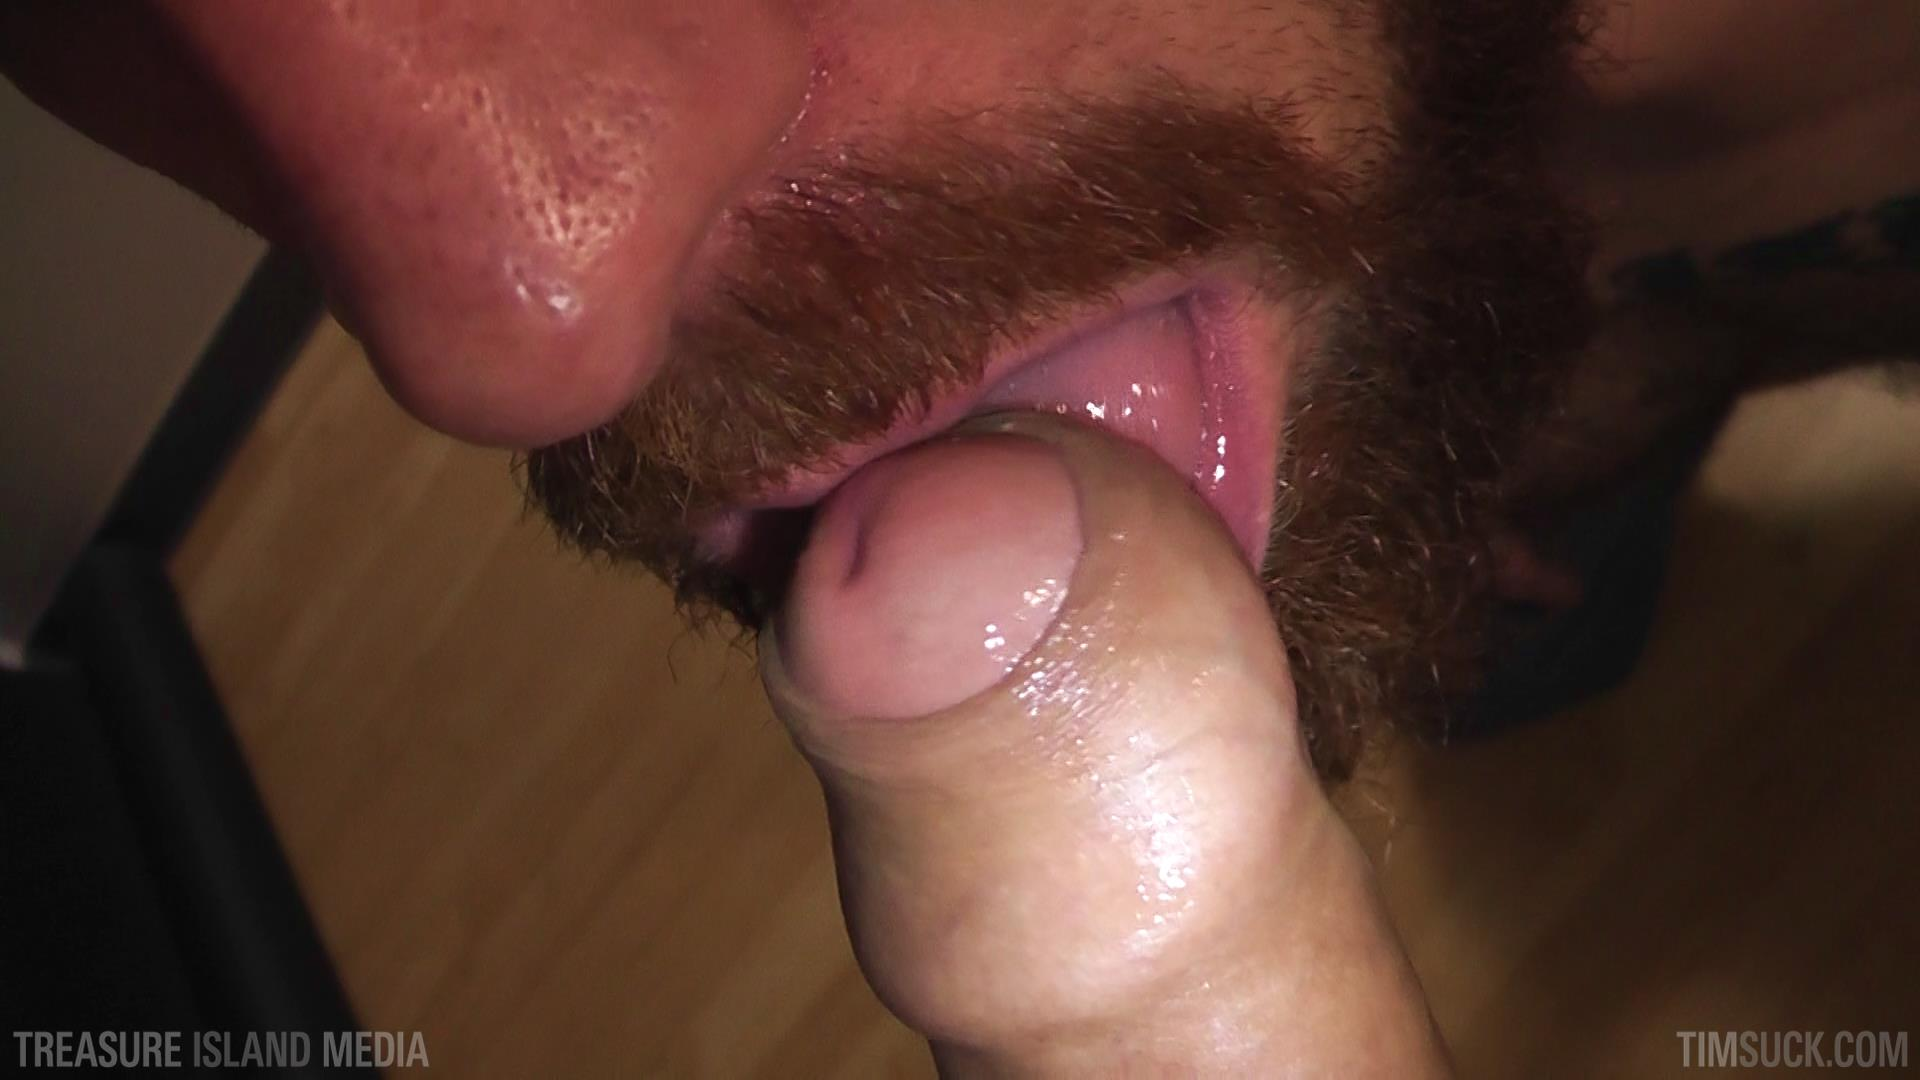 Treasure-Island-Media-TimSuck-Pete-Summers-and-Dean-Brody-Sucking-A-Big-Uncut-Cock-Amateur-Gay-Porn-37 Bearded Ginger Services A Big Uncut Cock And Eats The Cum